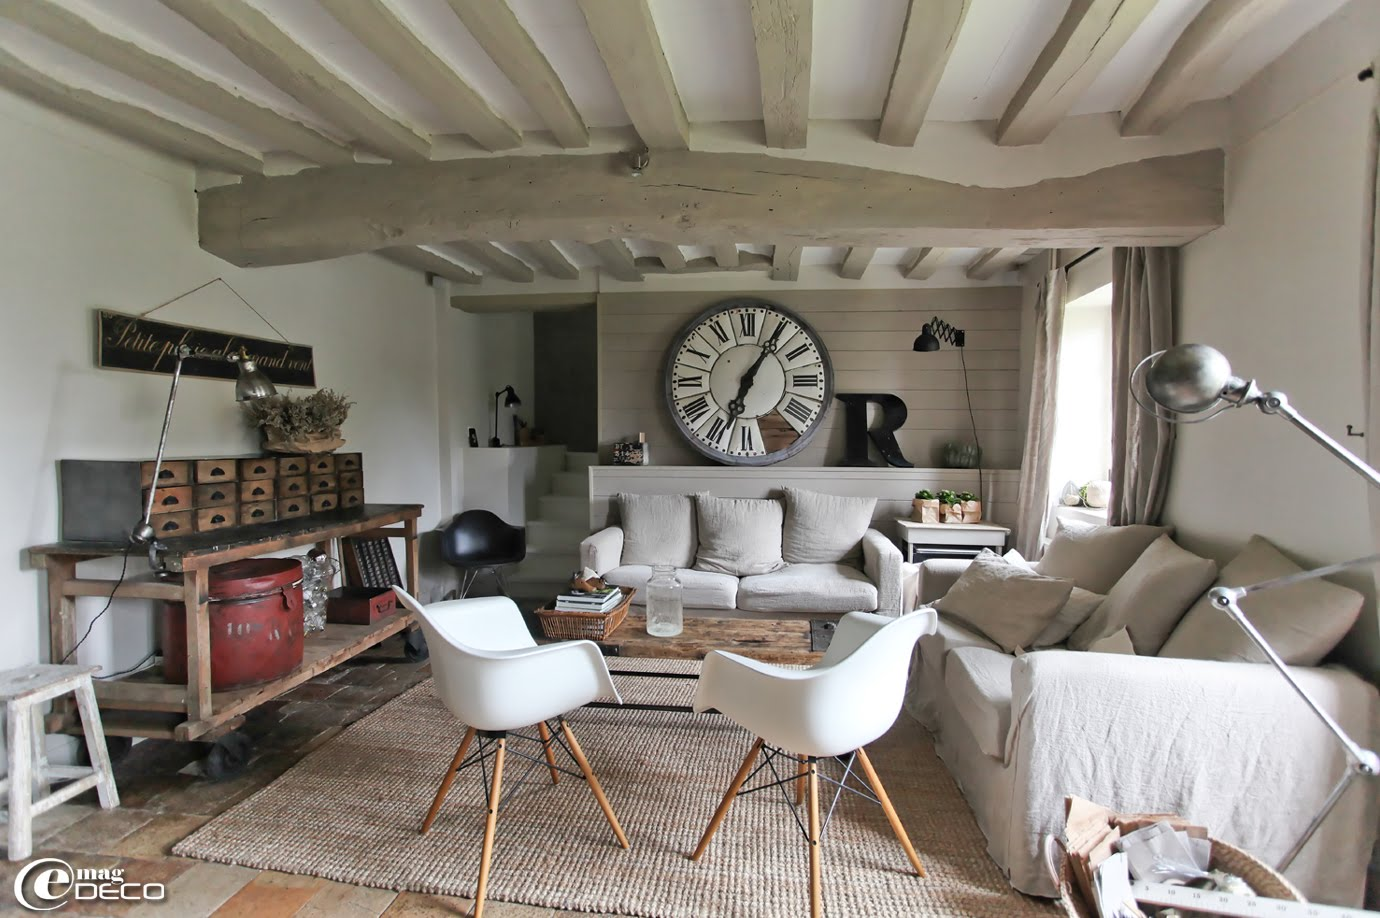 D co salon longere - Idee deco maison stille moderne ancien ...